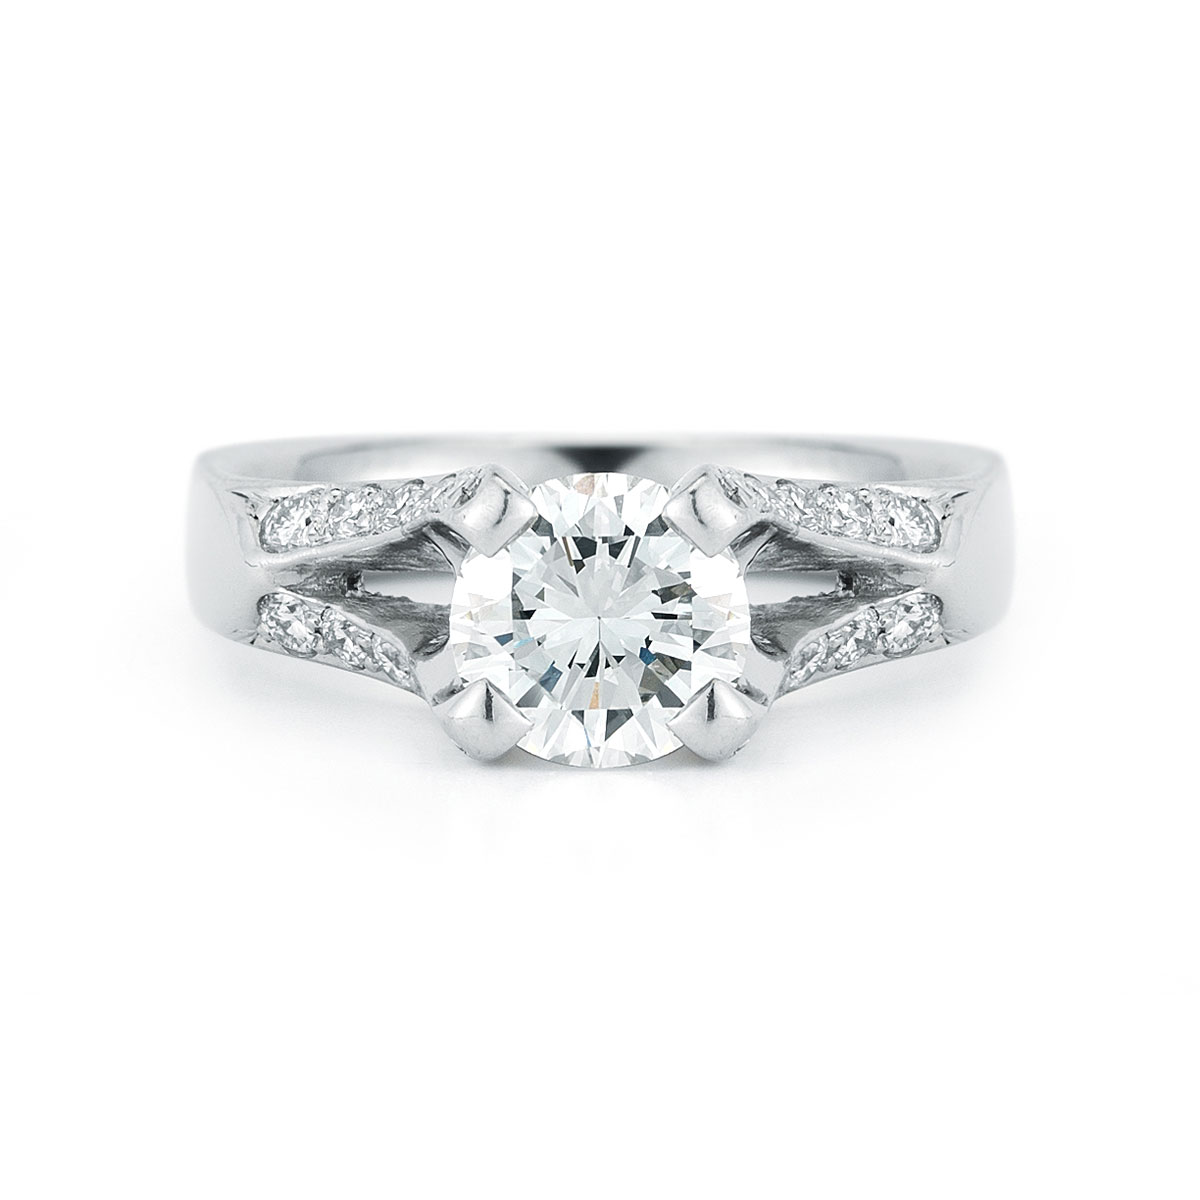 Wr0199 diamond prong engagement ring dejonghe original for Just my style personalized jewelry studio